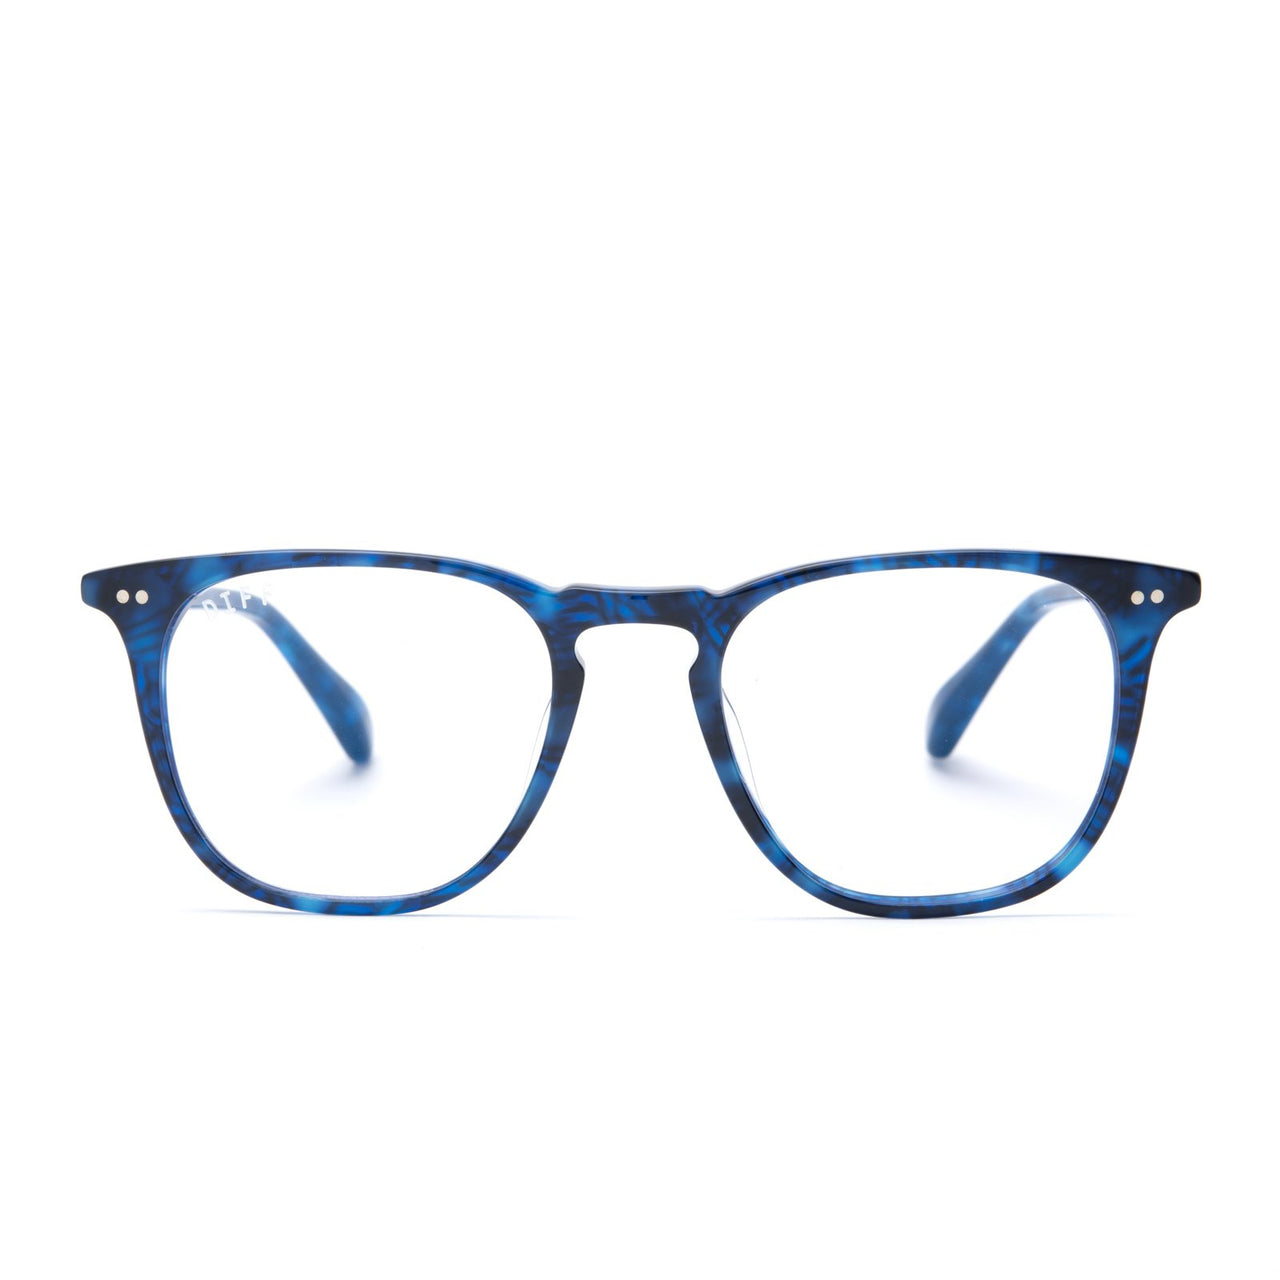 Maxwell prescription glasses with regal blue frames front view